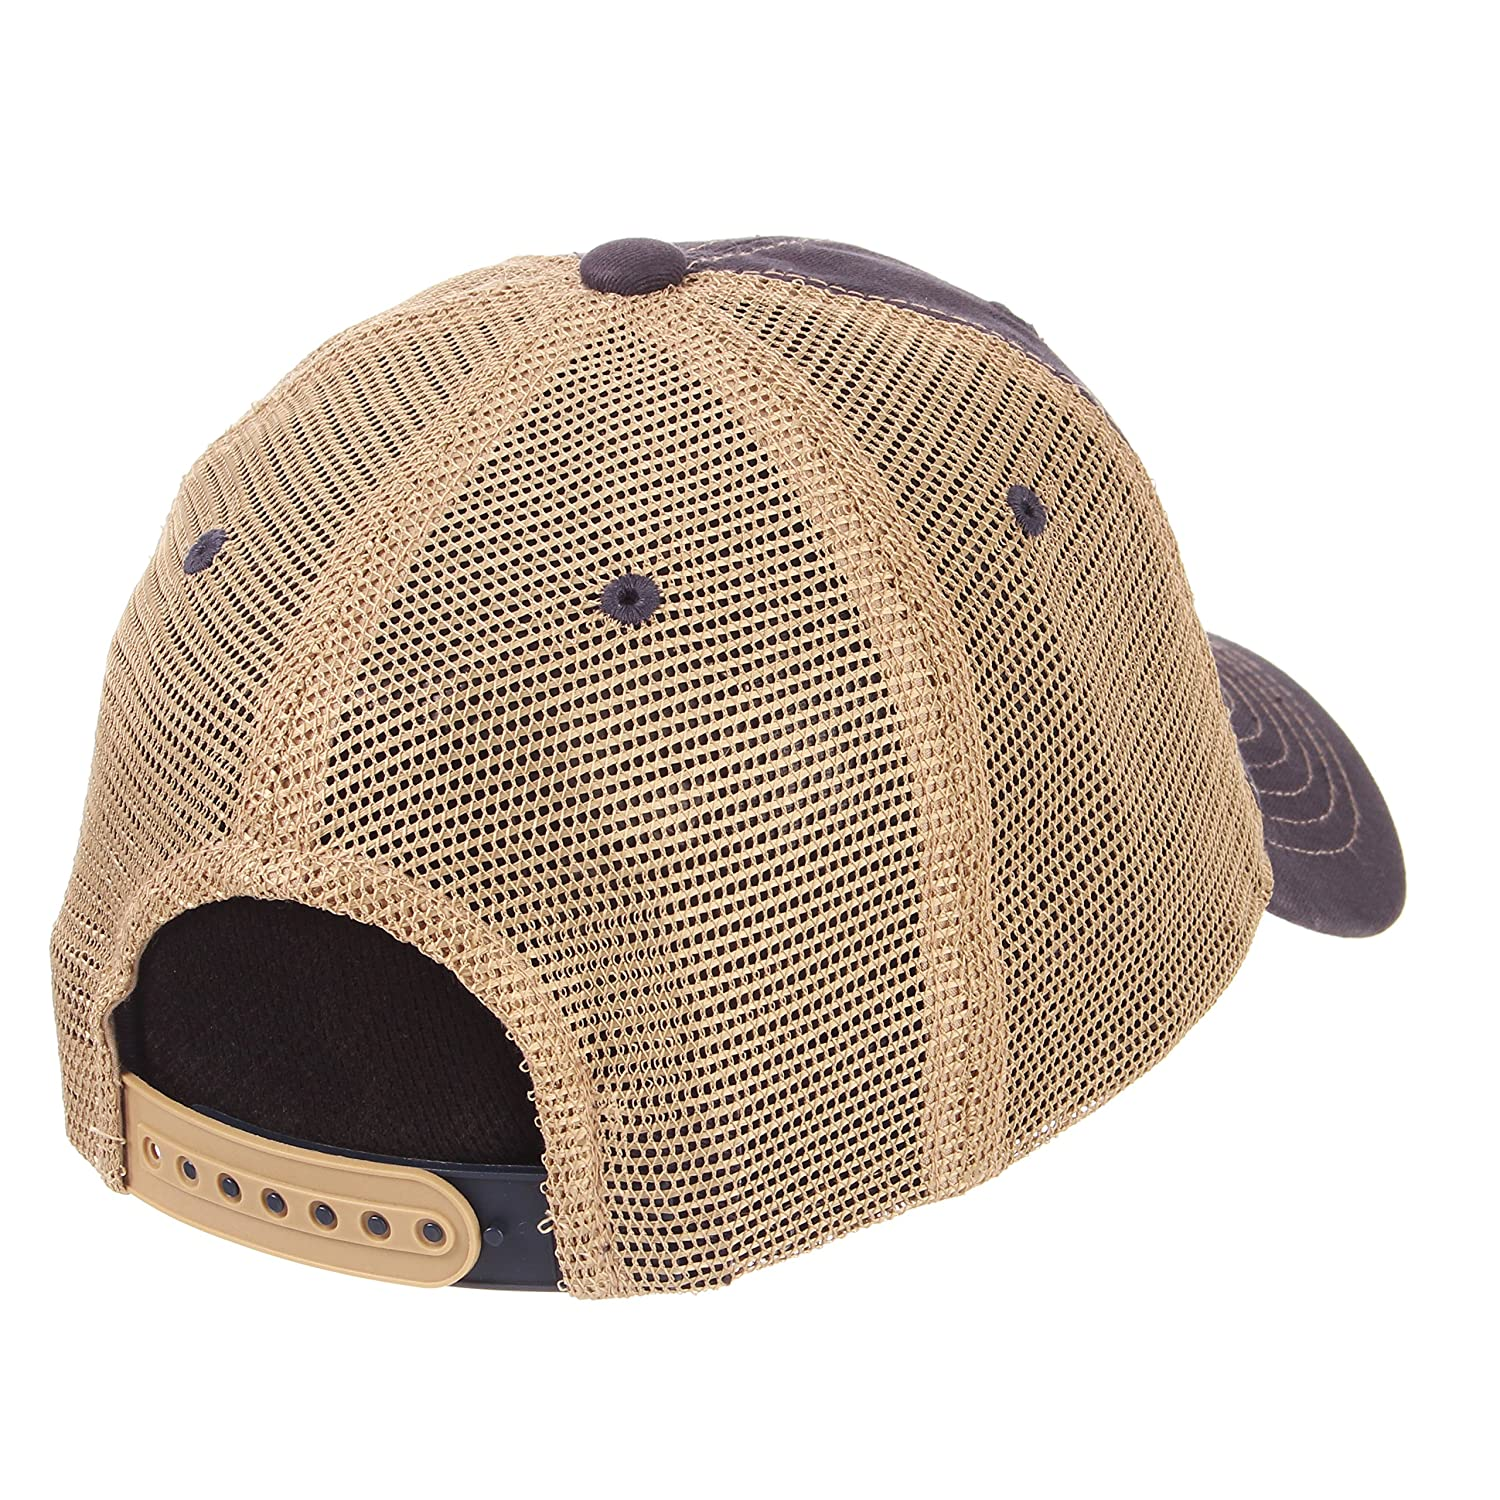 info for 629b9 08823 NCAA Minnesota Golden Gophers Mens Institution Relaxed Cap Adjustable  Maroon Zephyr Graf-X INS0010